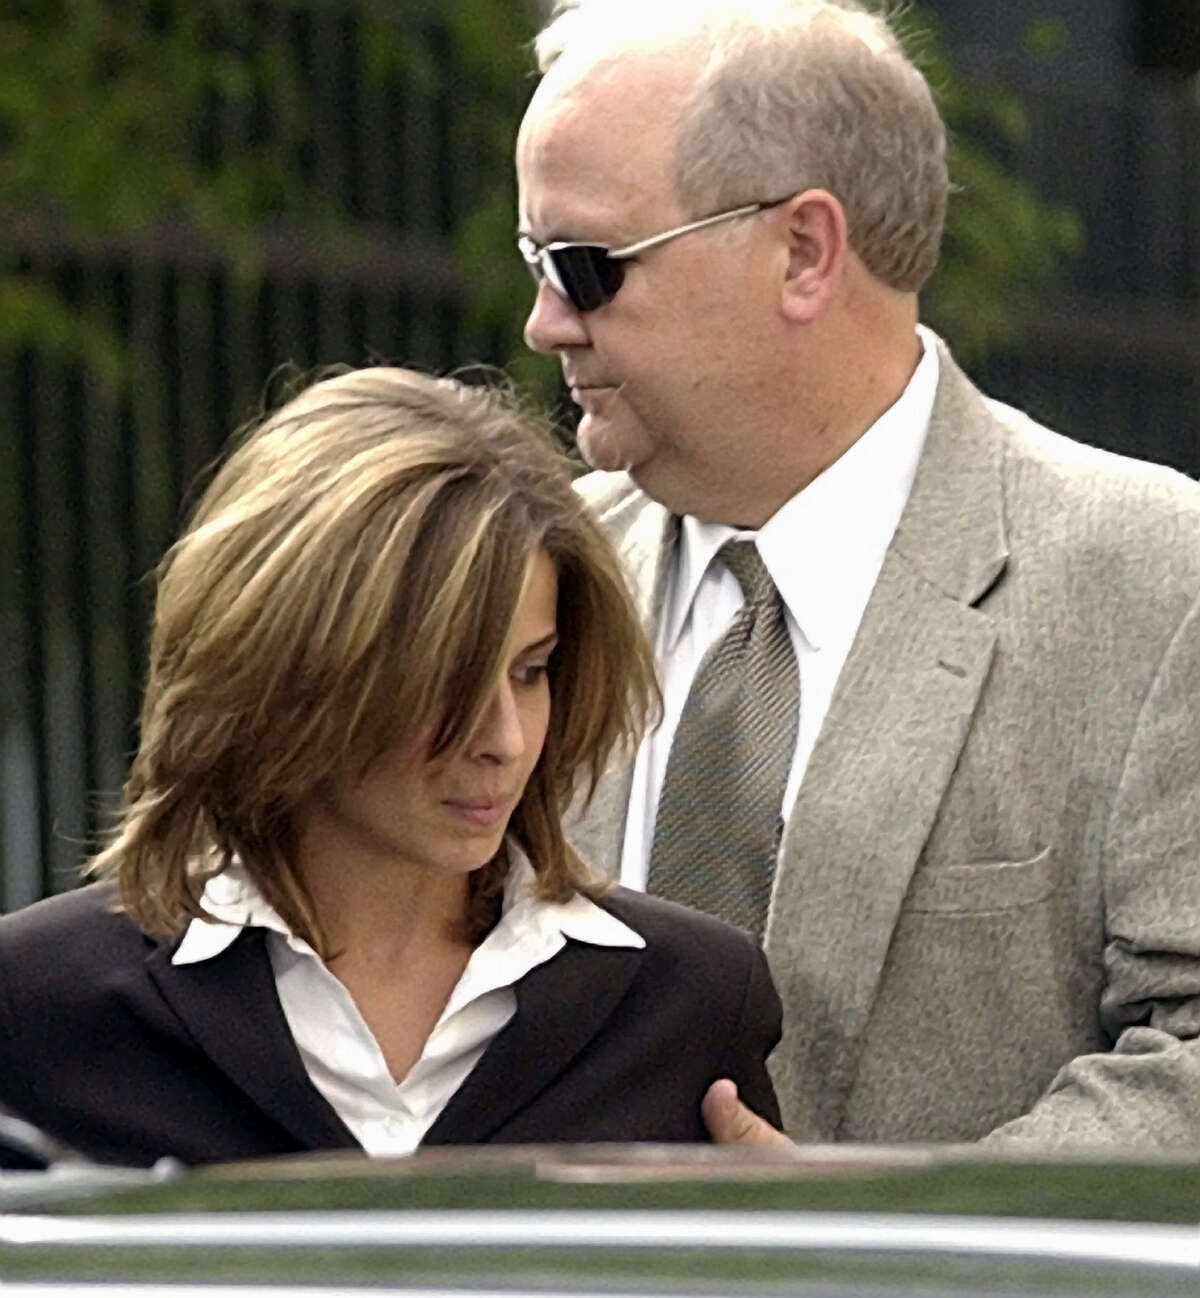 Helen Christine Sharkey, left, a former member of Dynegy's risk control and deal structure groups, is escorted into the Federal Courthouse, Thursday, June 12, 2003, in Houston. Sharkey is one of three former Dynegy Inc. executives charged in a federal indictment unsealed Thursday with creating an Enronesque deal in 2001 used to wrongly boost cash flow and cut taxes to counteract Wall Street worries about the company's financial health. (AP Photo/David J. Phillip)